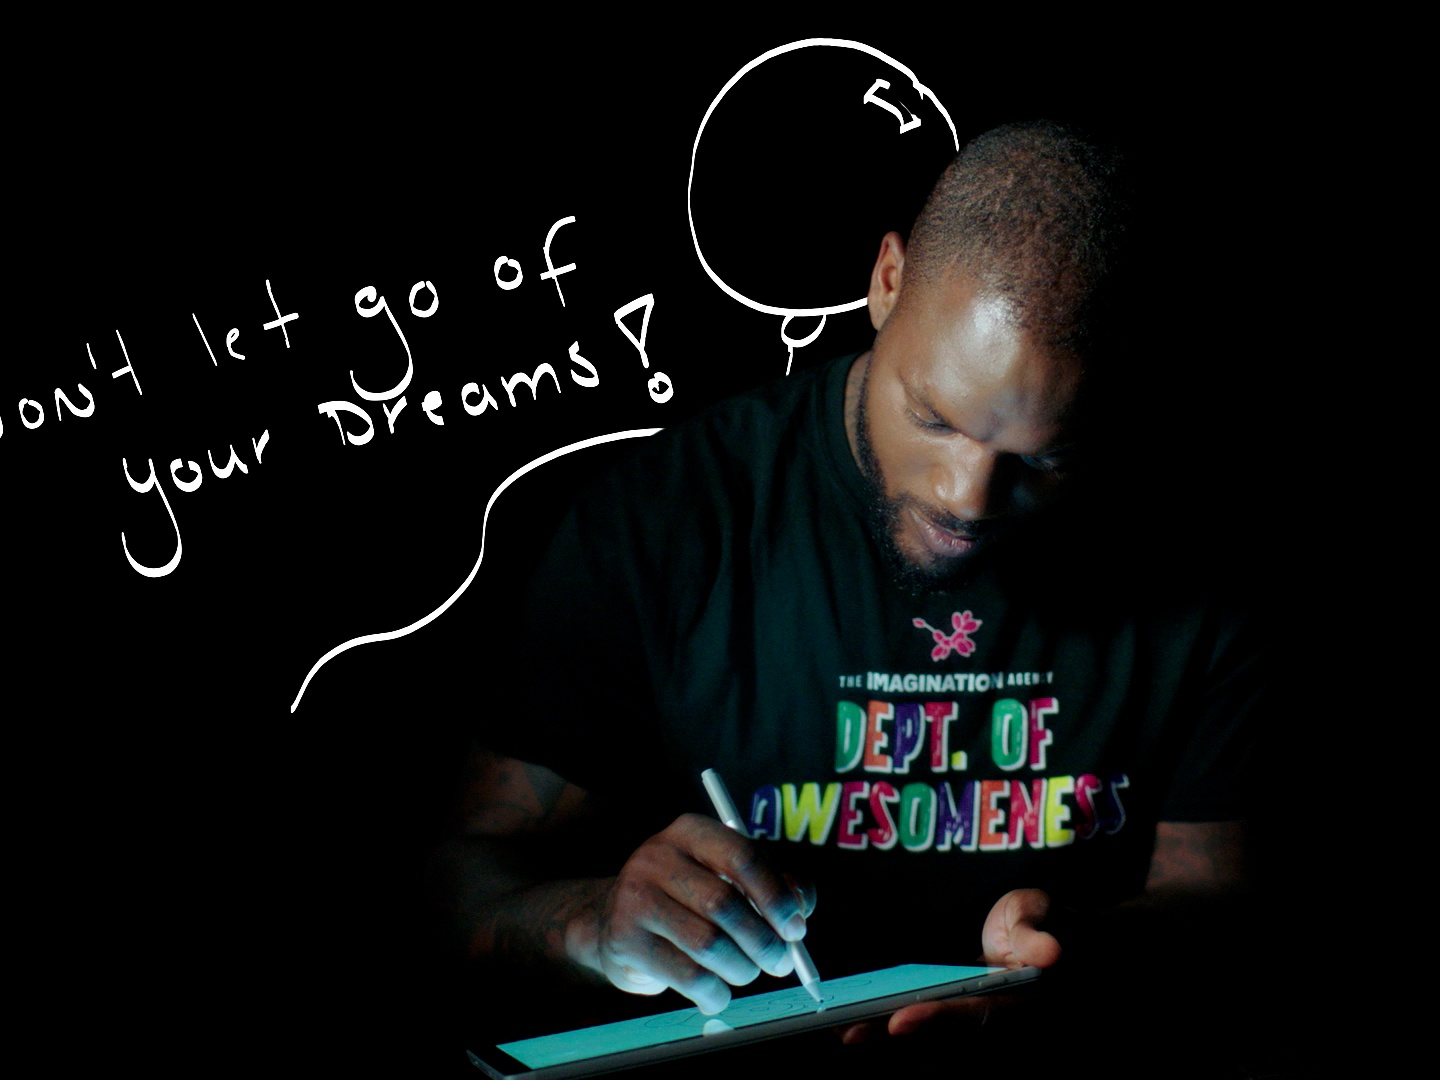 Image for Microsoft Create Change - Martellus Bennett